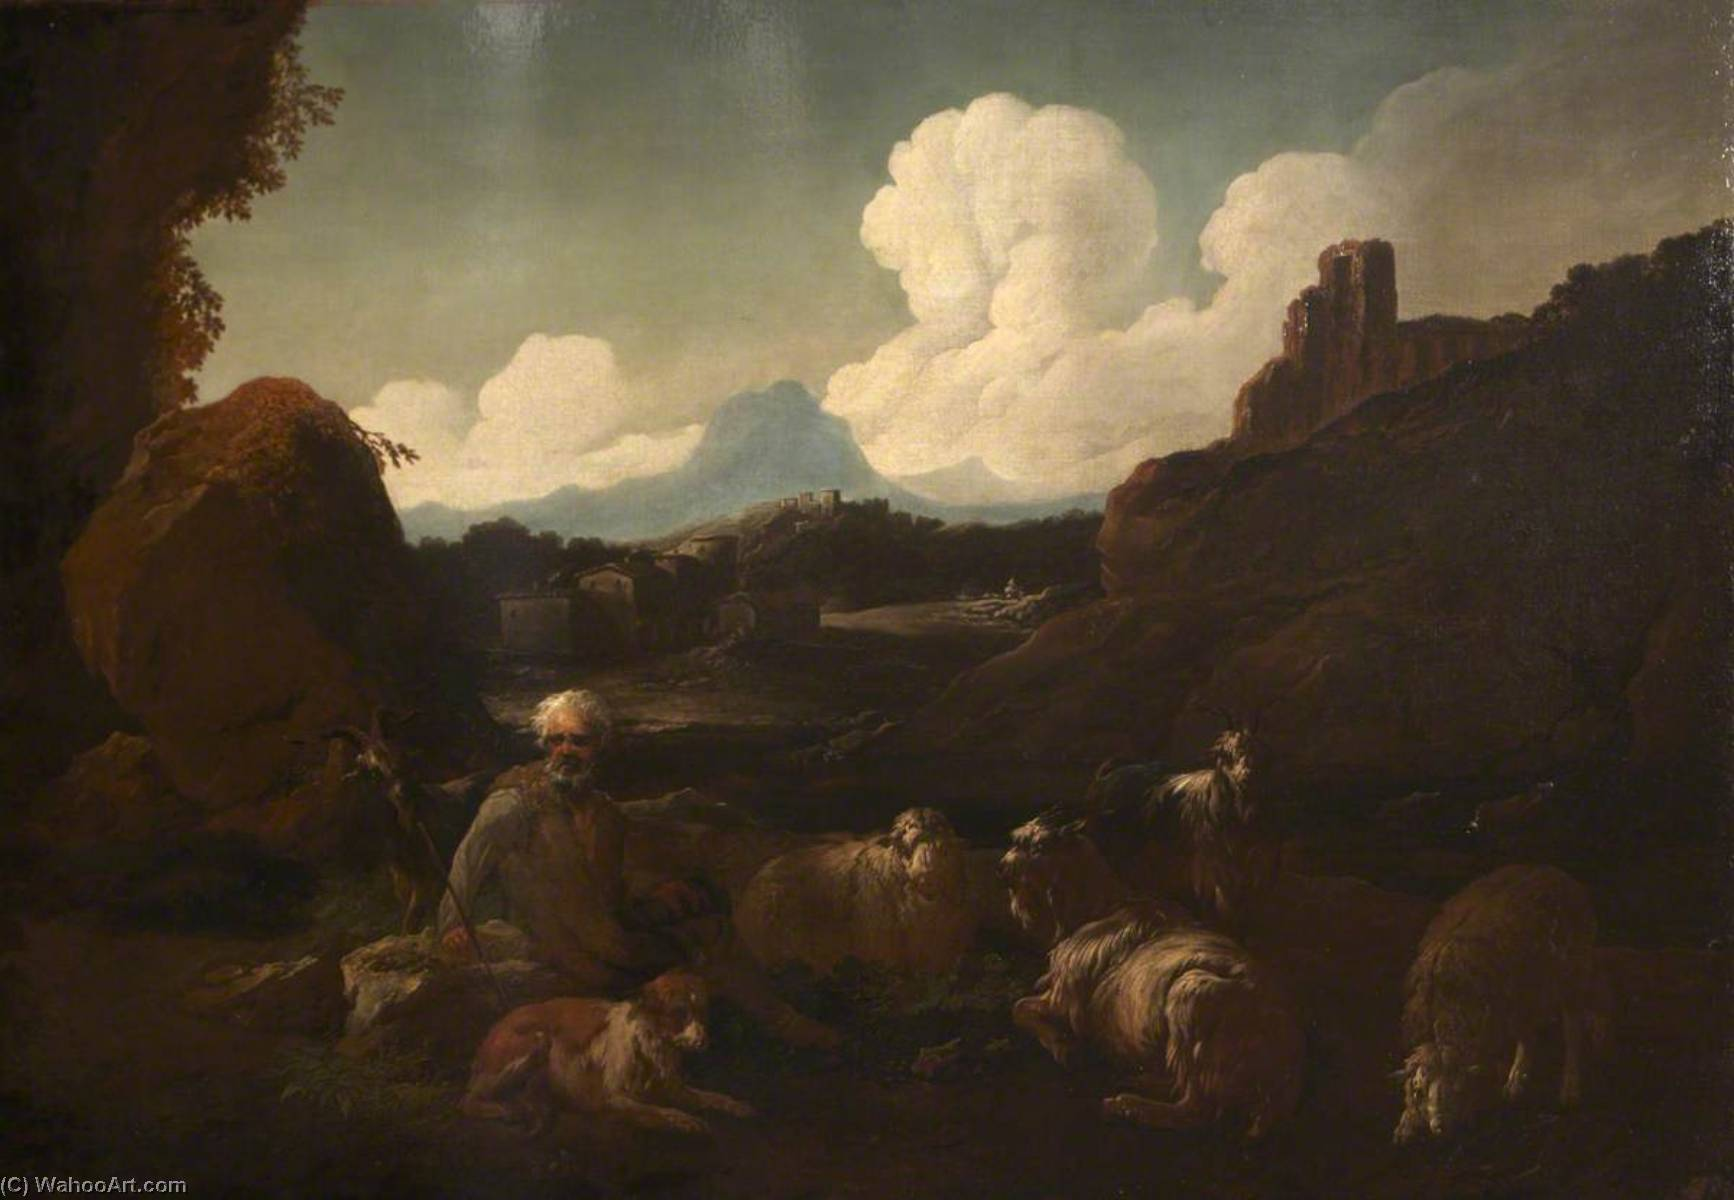 Peasant Attending Sheep by Jacopo Bassano The Elder (1510-1592) | Reproductions Jacopo Bassano The Elder | WahooArt.com